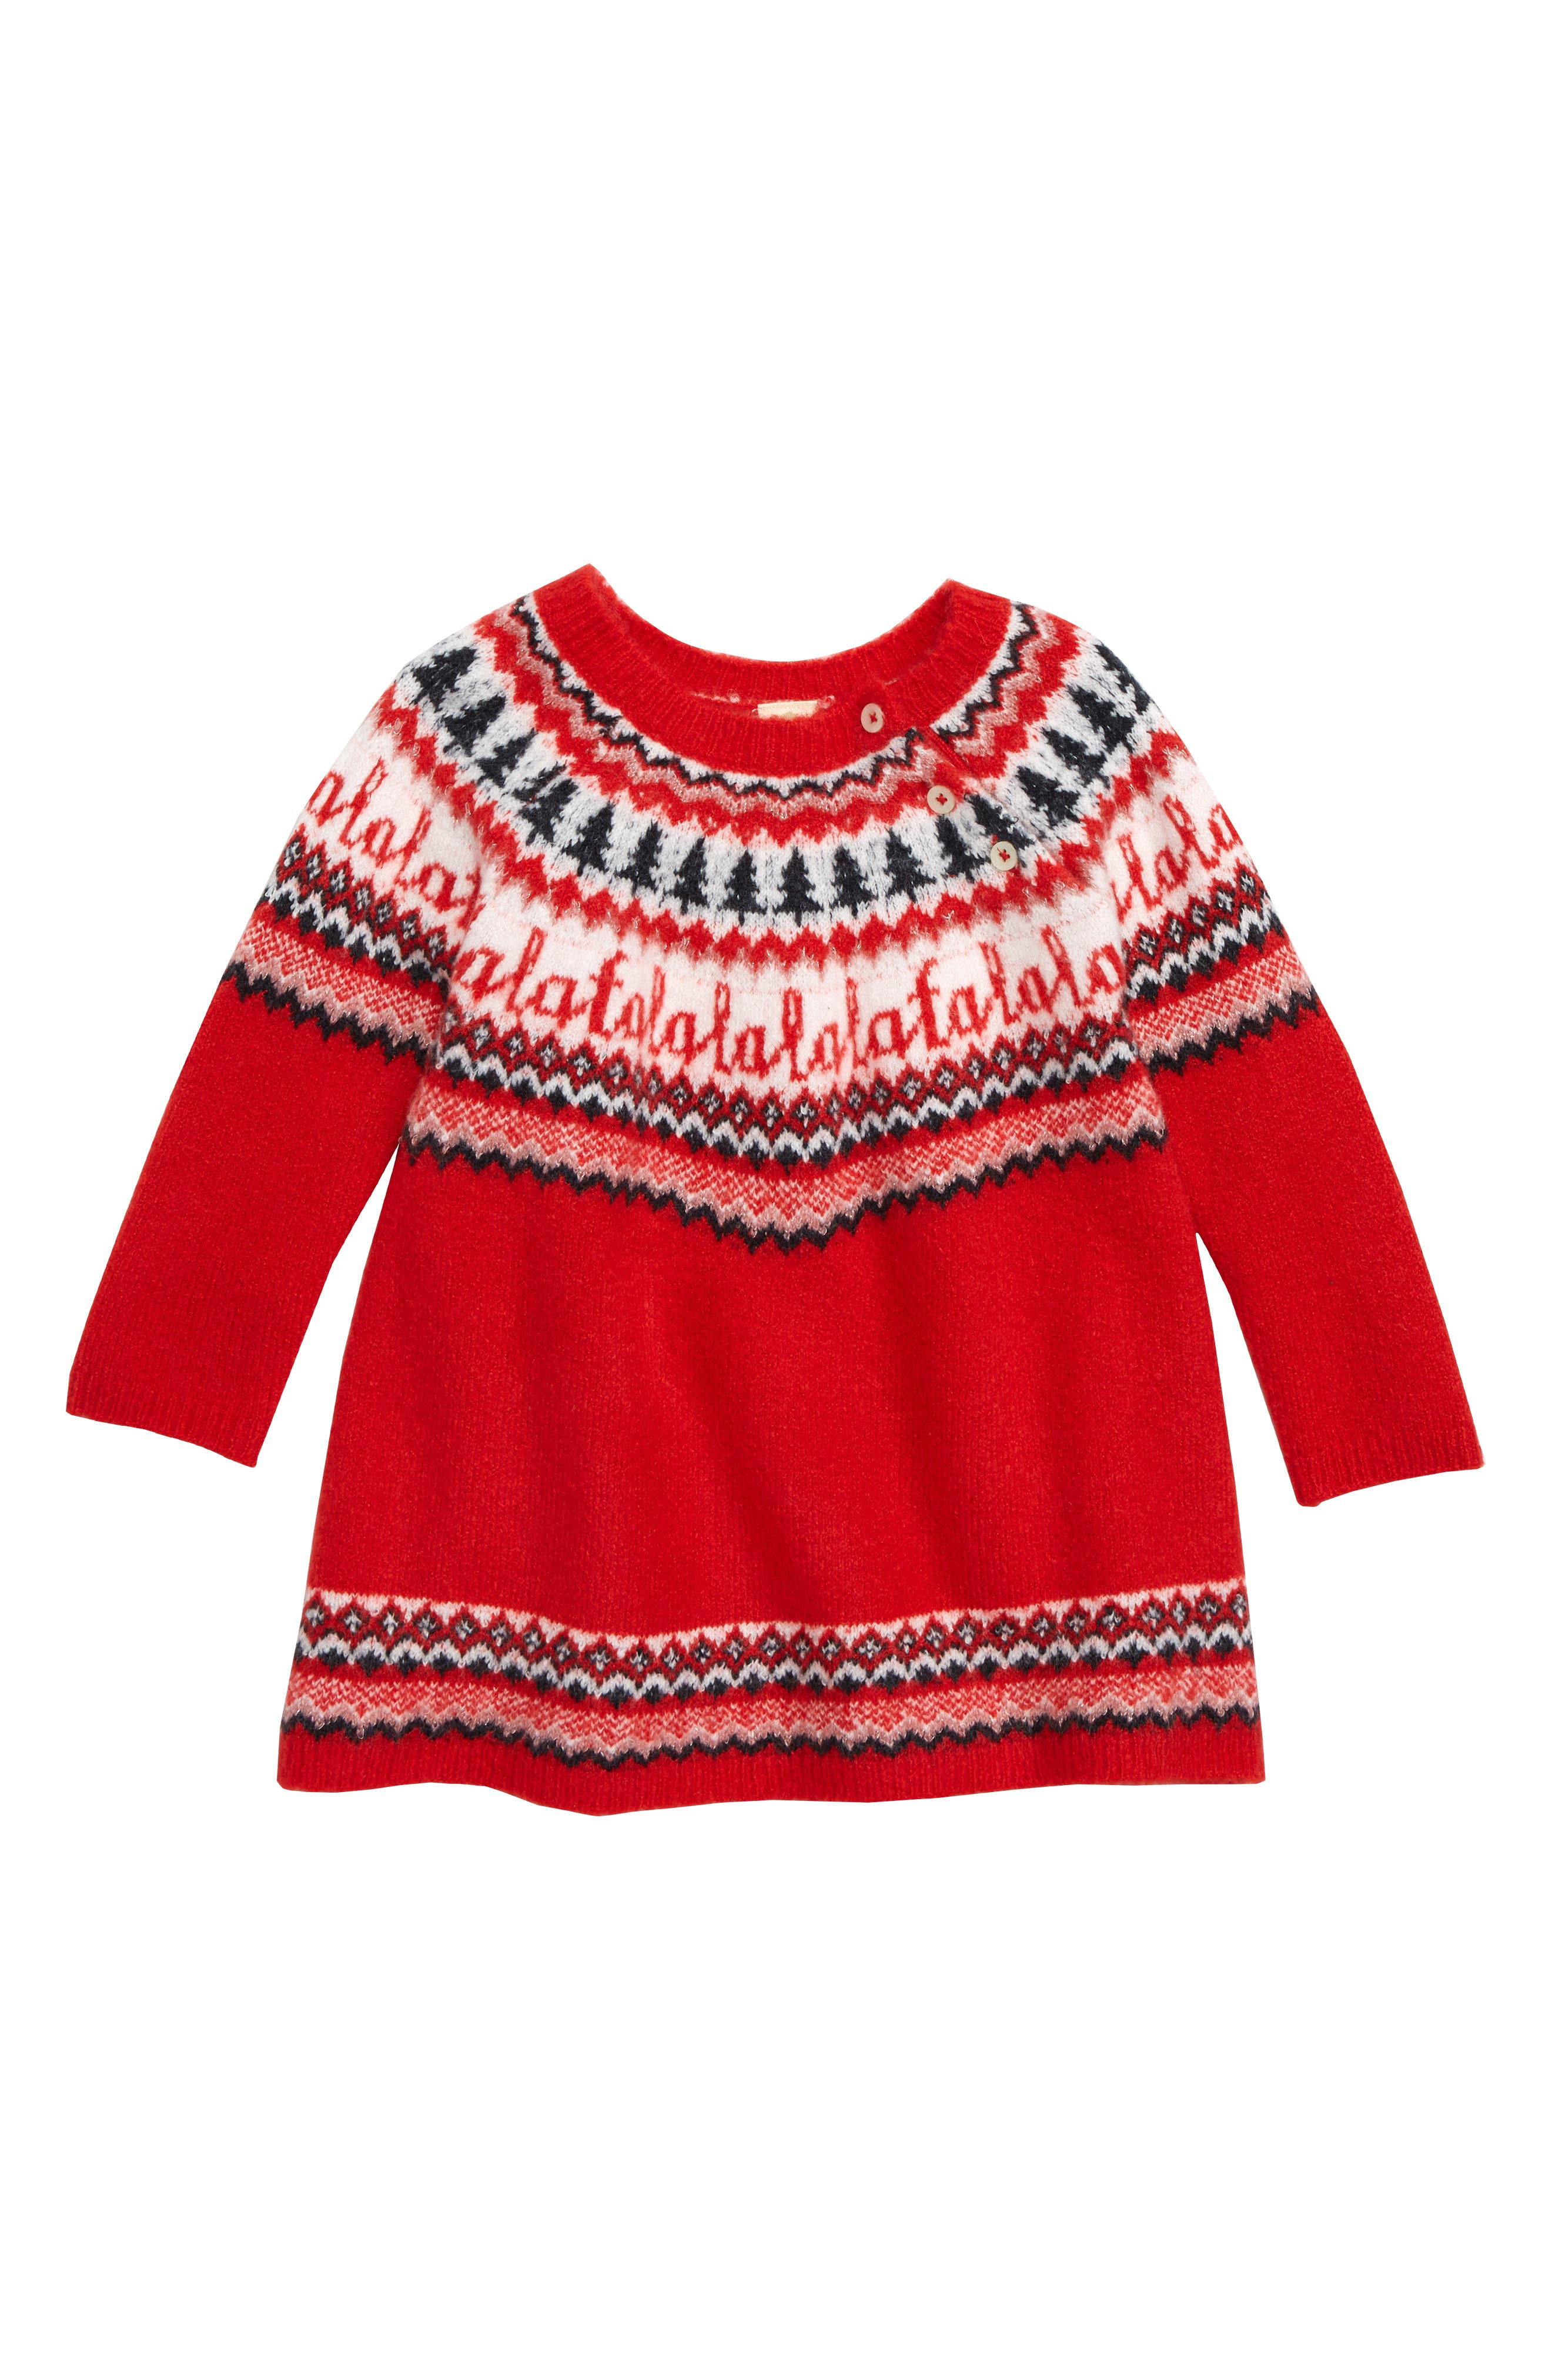 Holiday Sweater Dress,                         Main,                         color, RED PEPPER NORDIC HOLIDAY